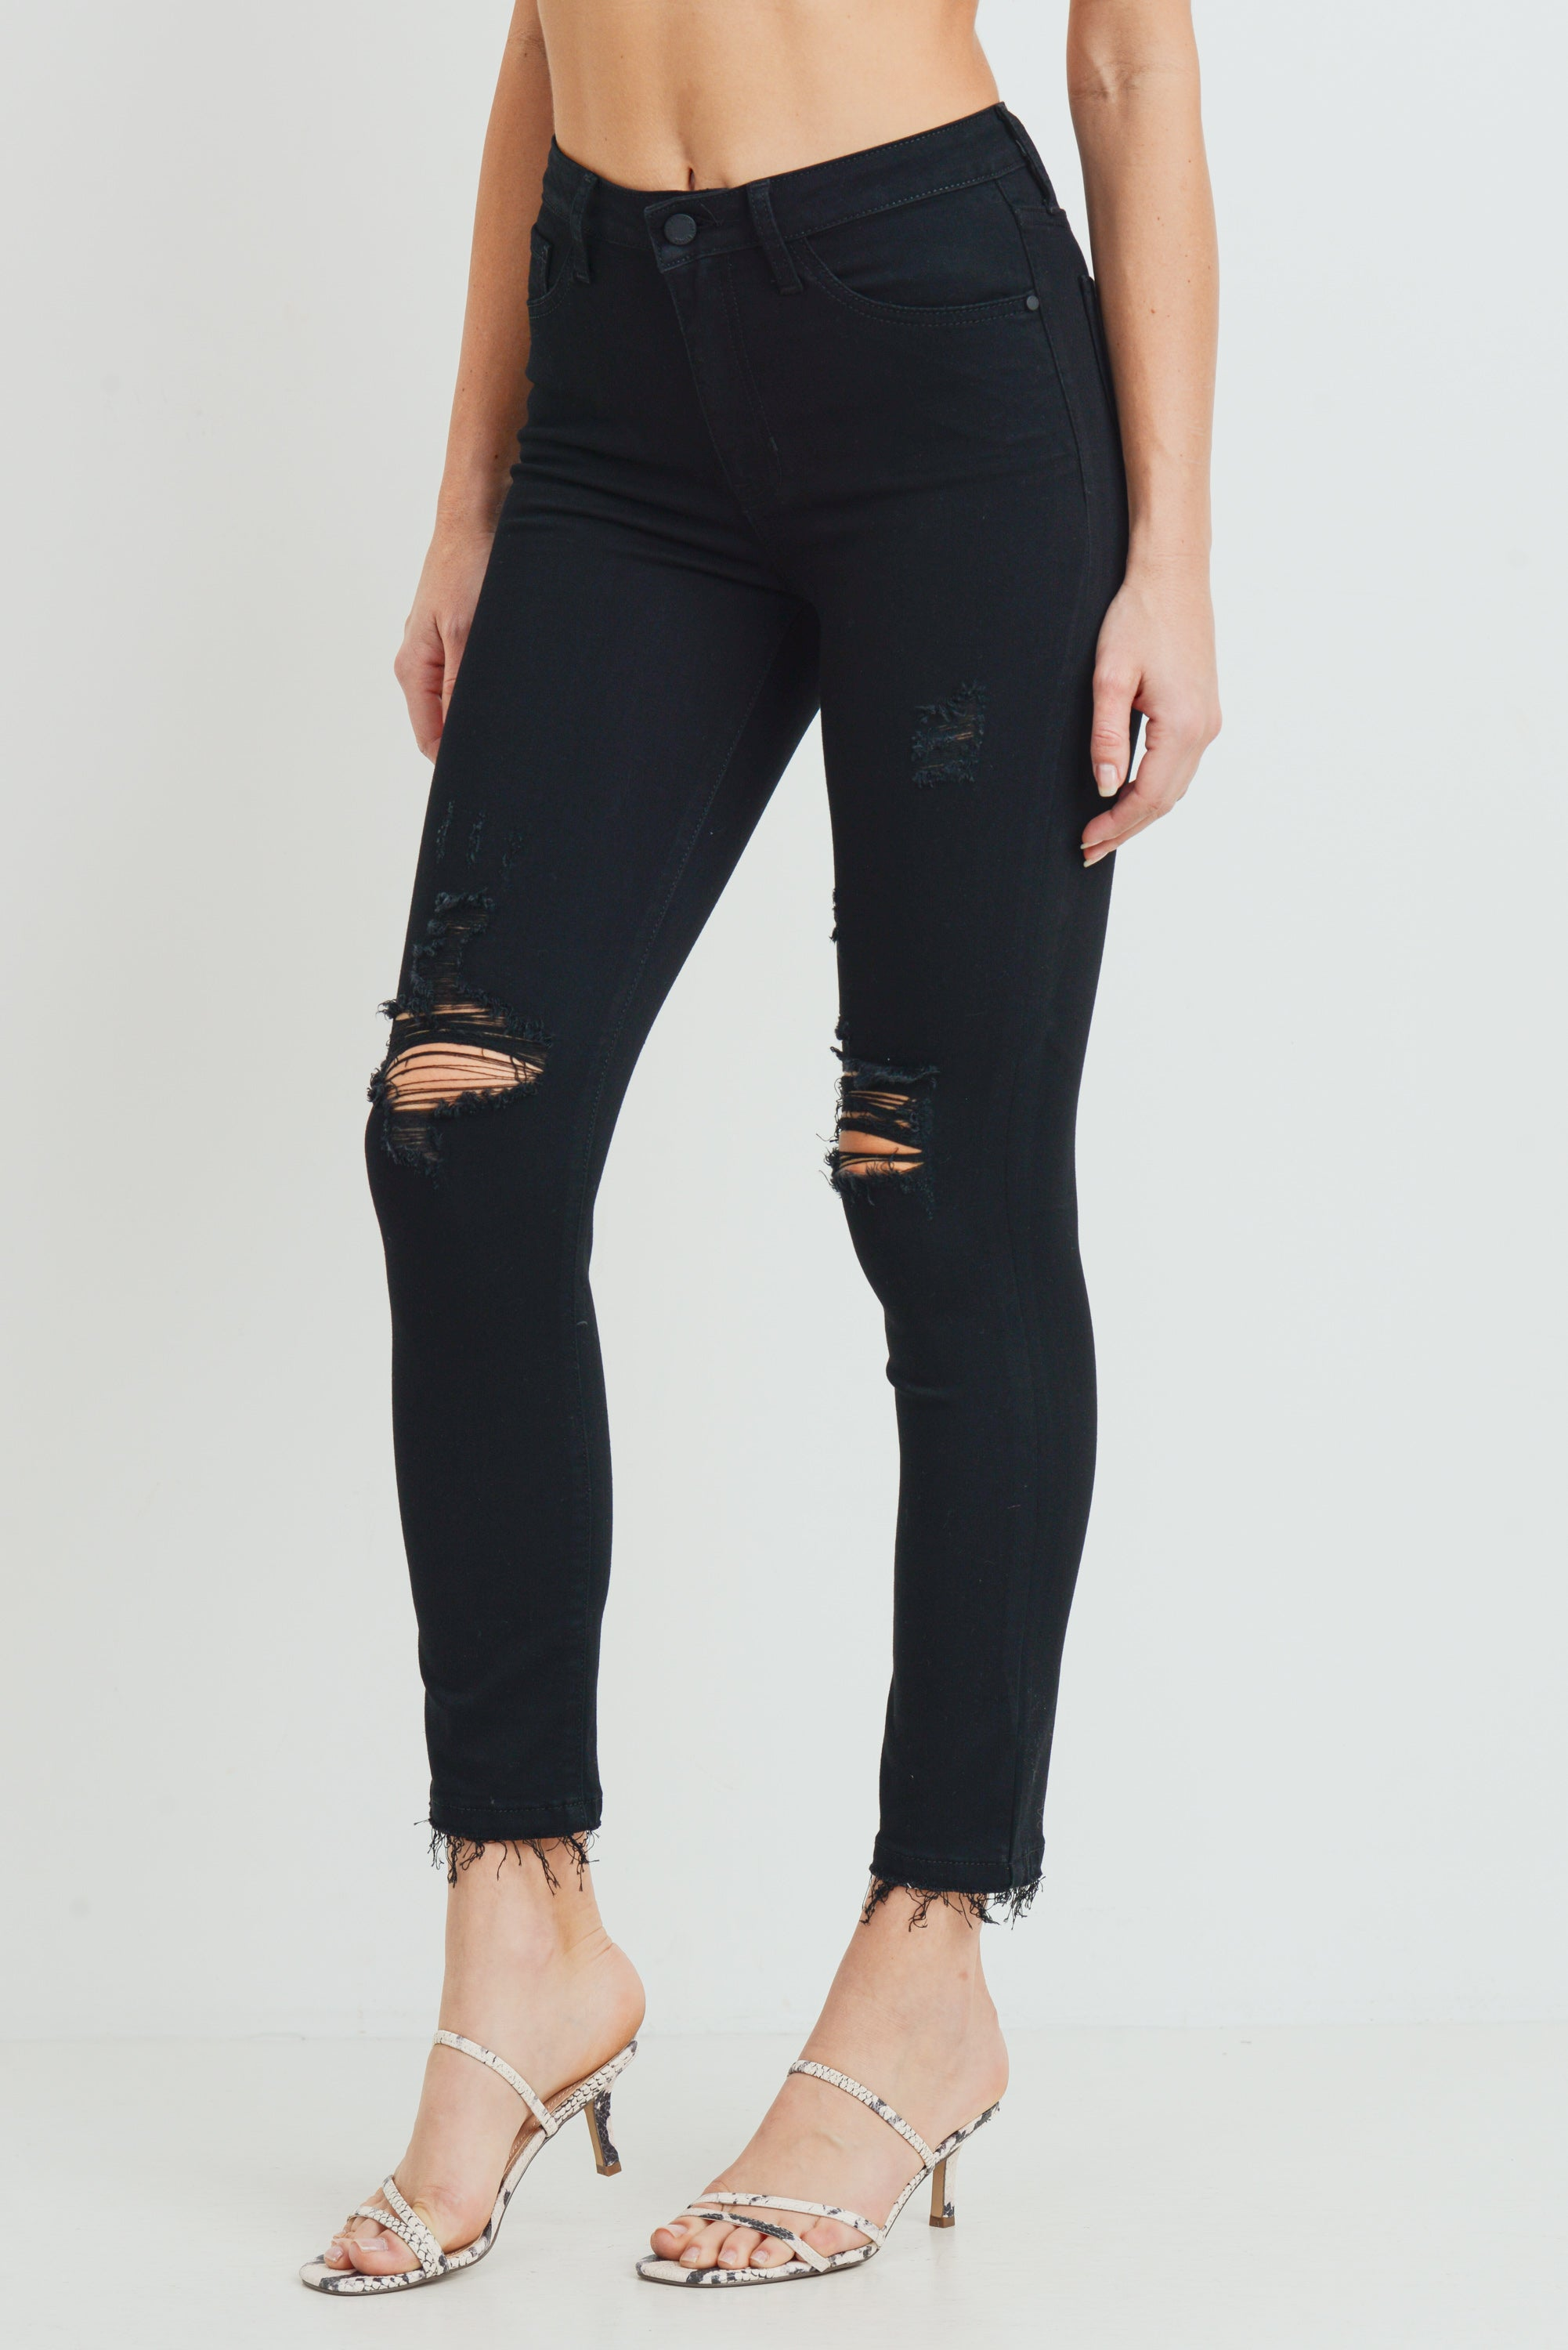 Black Cadillac High Rise Skinnies